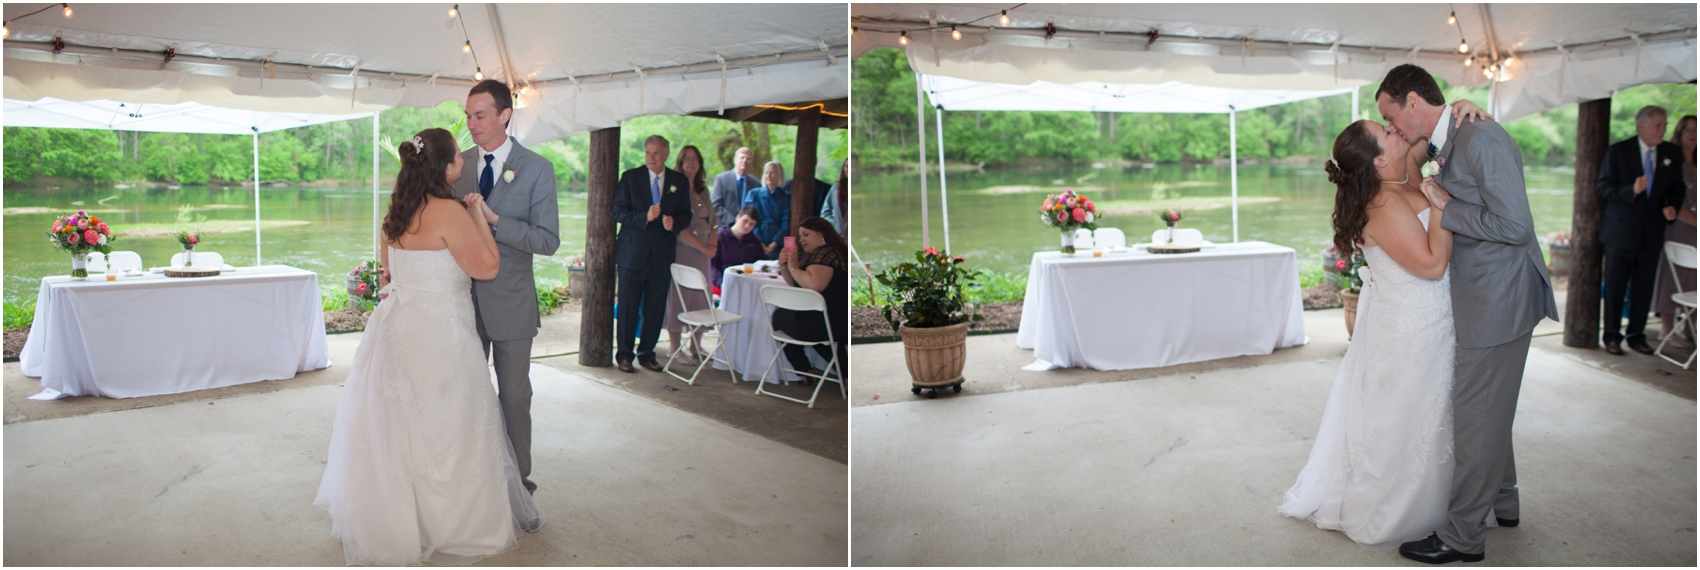 Outdoor_Central_Virginia_Clores_Bros_Summer_Wedding_Fredericksburg_VA_0080.jpg